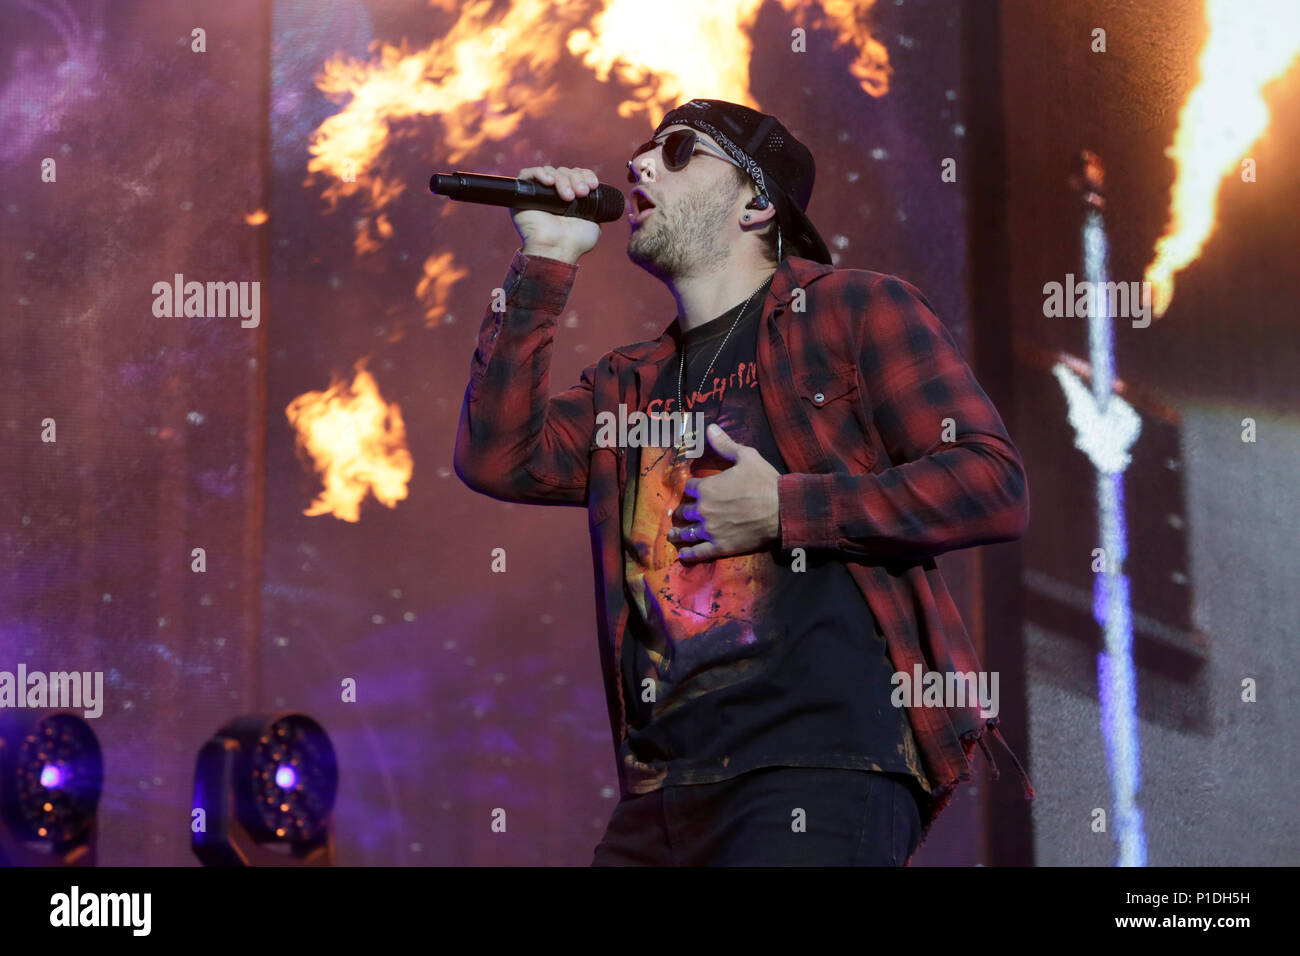 M Shadows Stock Photos & M Shadows Stock Images - Alamy